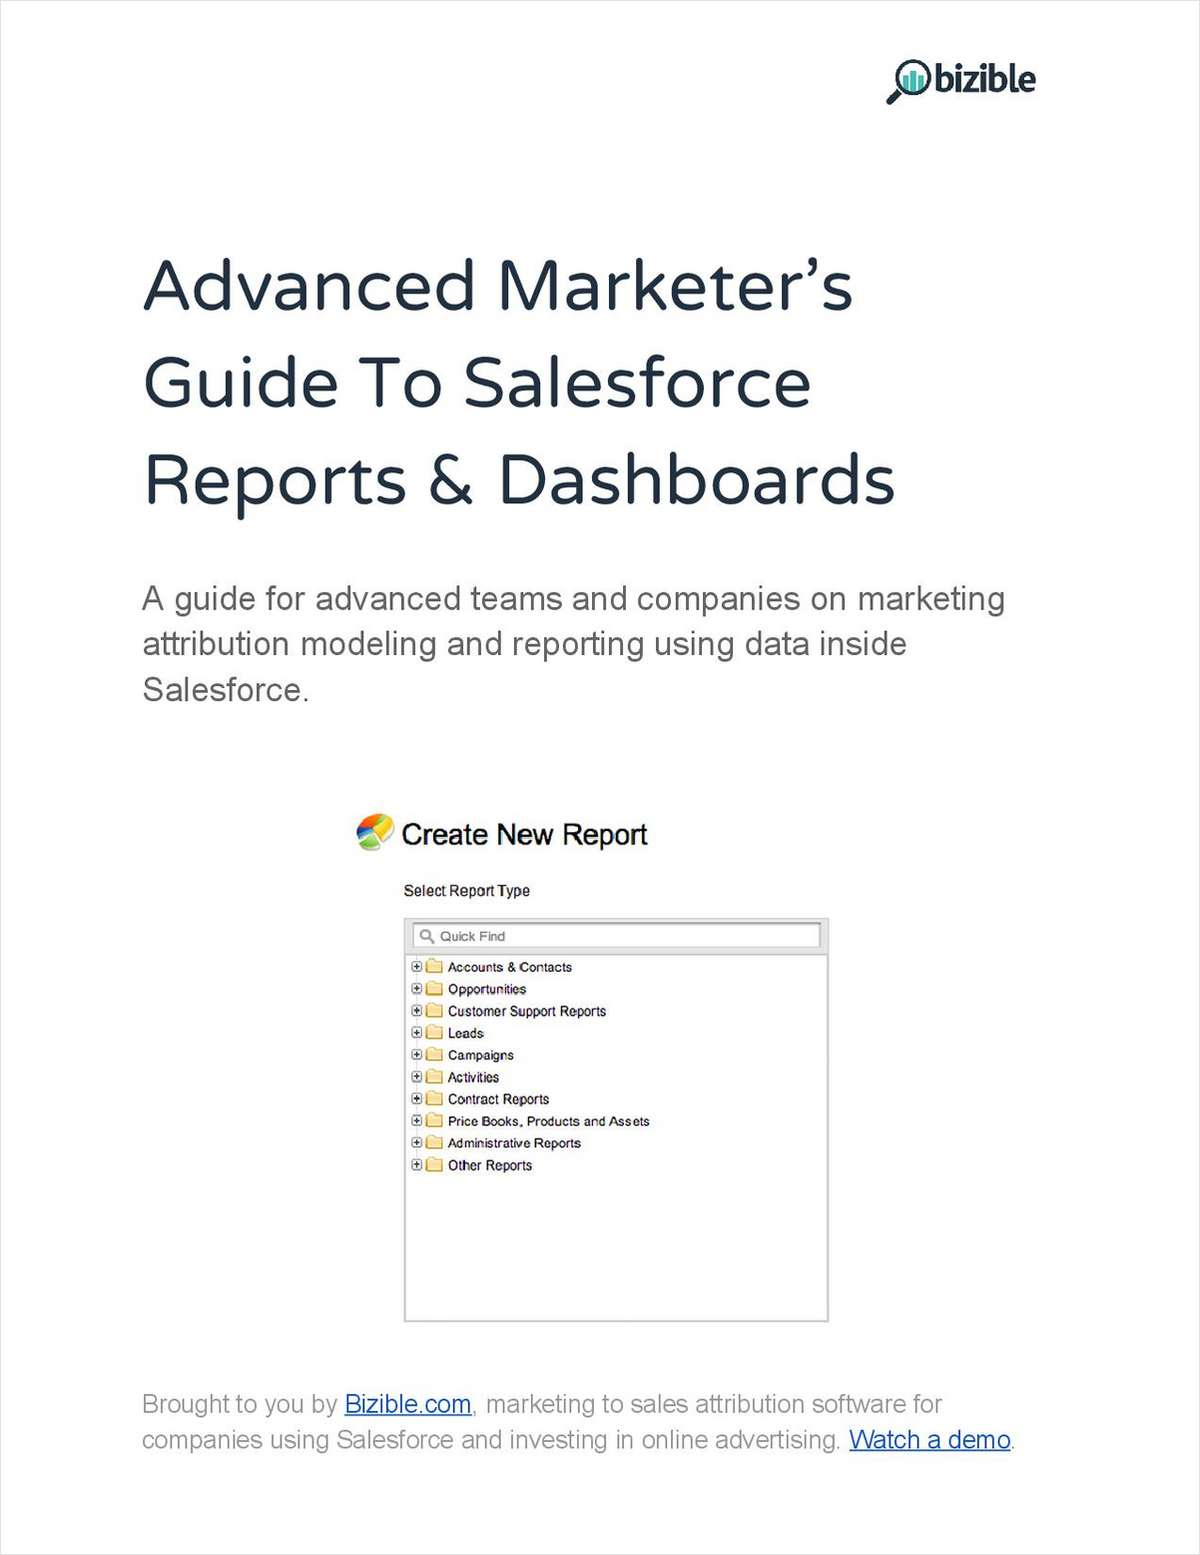 Advanced Marketer's Guide To Salesforce Reports & Dashboards